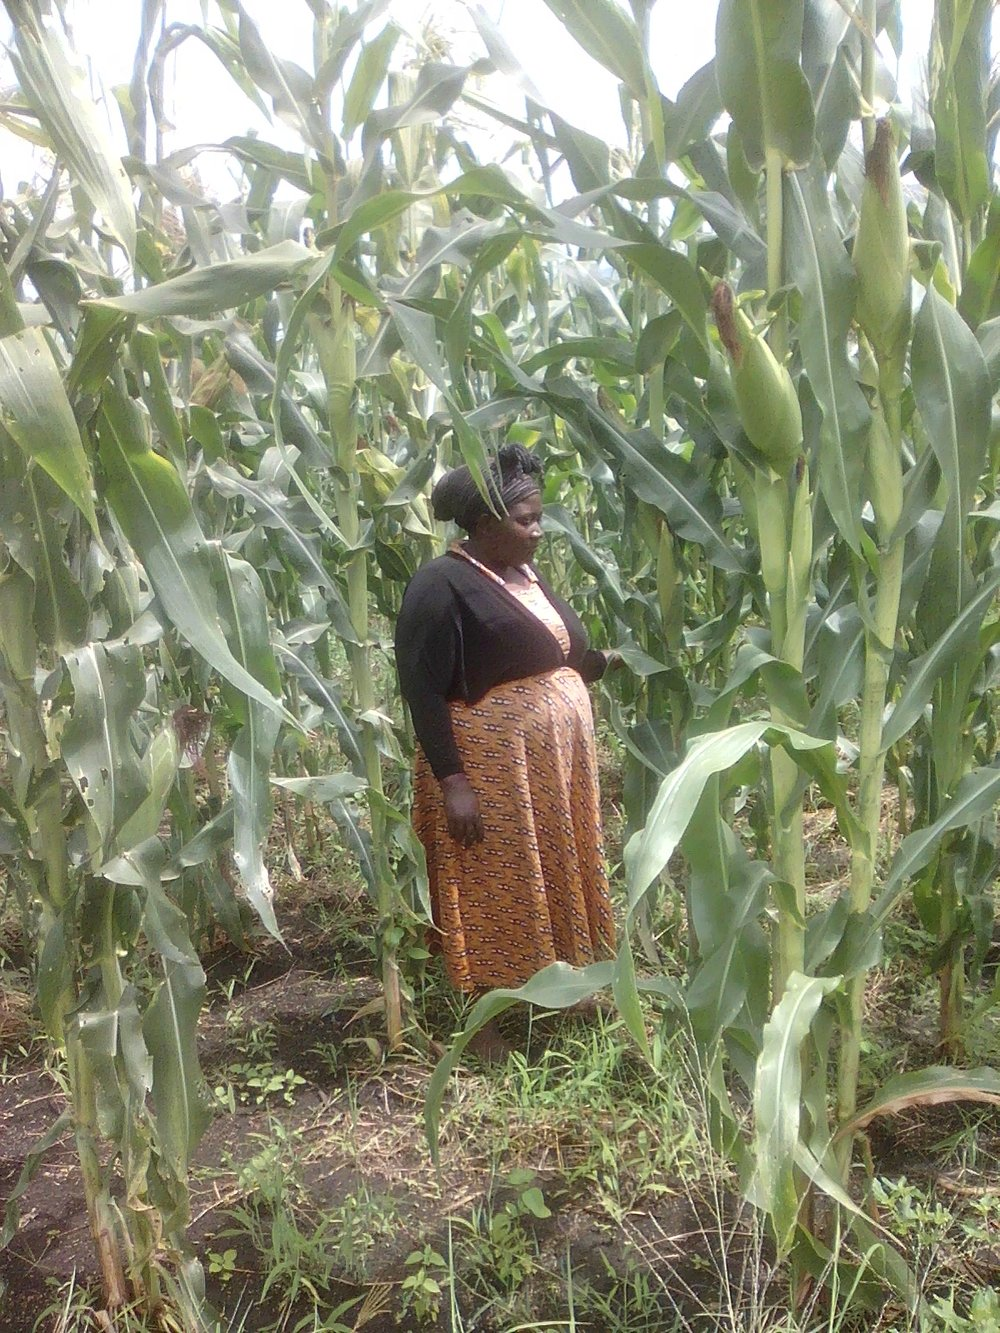 MULEMBA PASCEZIA SRCDO CHAIRPERSON DURING MONITORING AND EVALUATING OF THE MAIZE DEMONSTRATION GARDEN PROGRESS.jpg